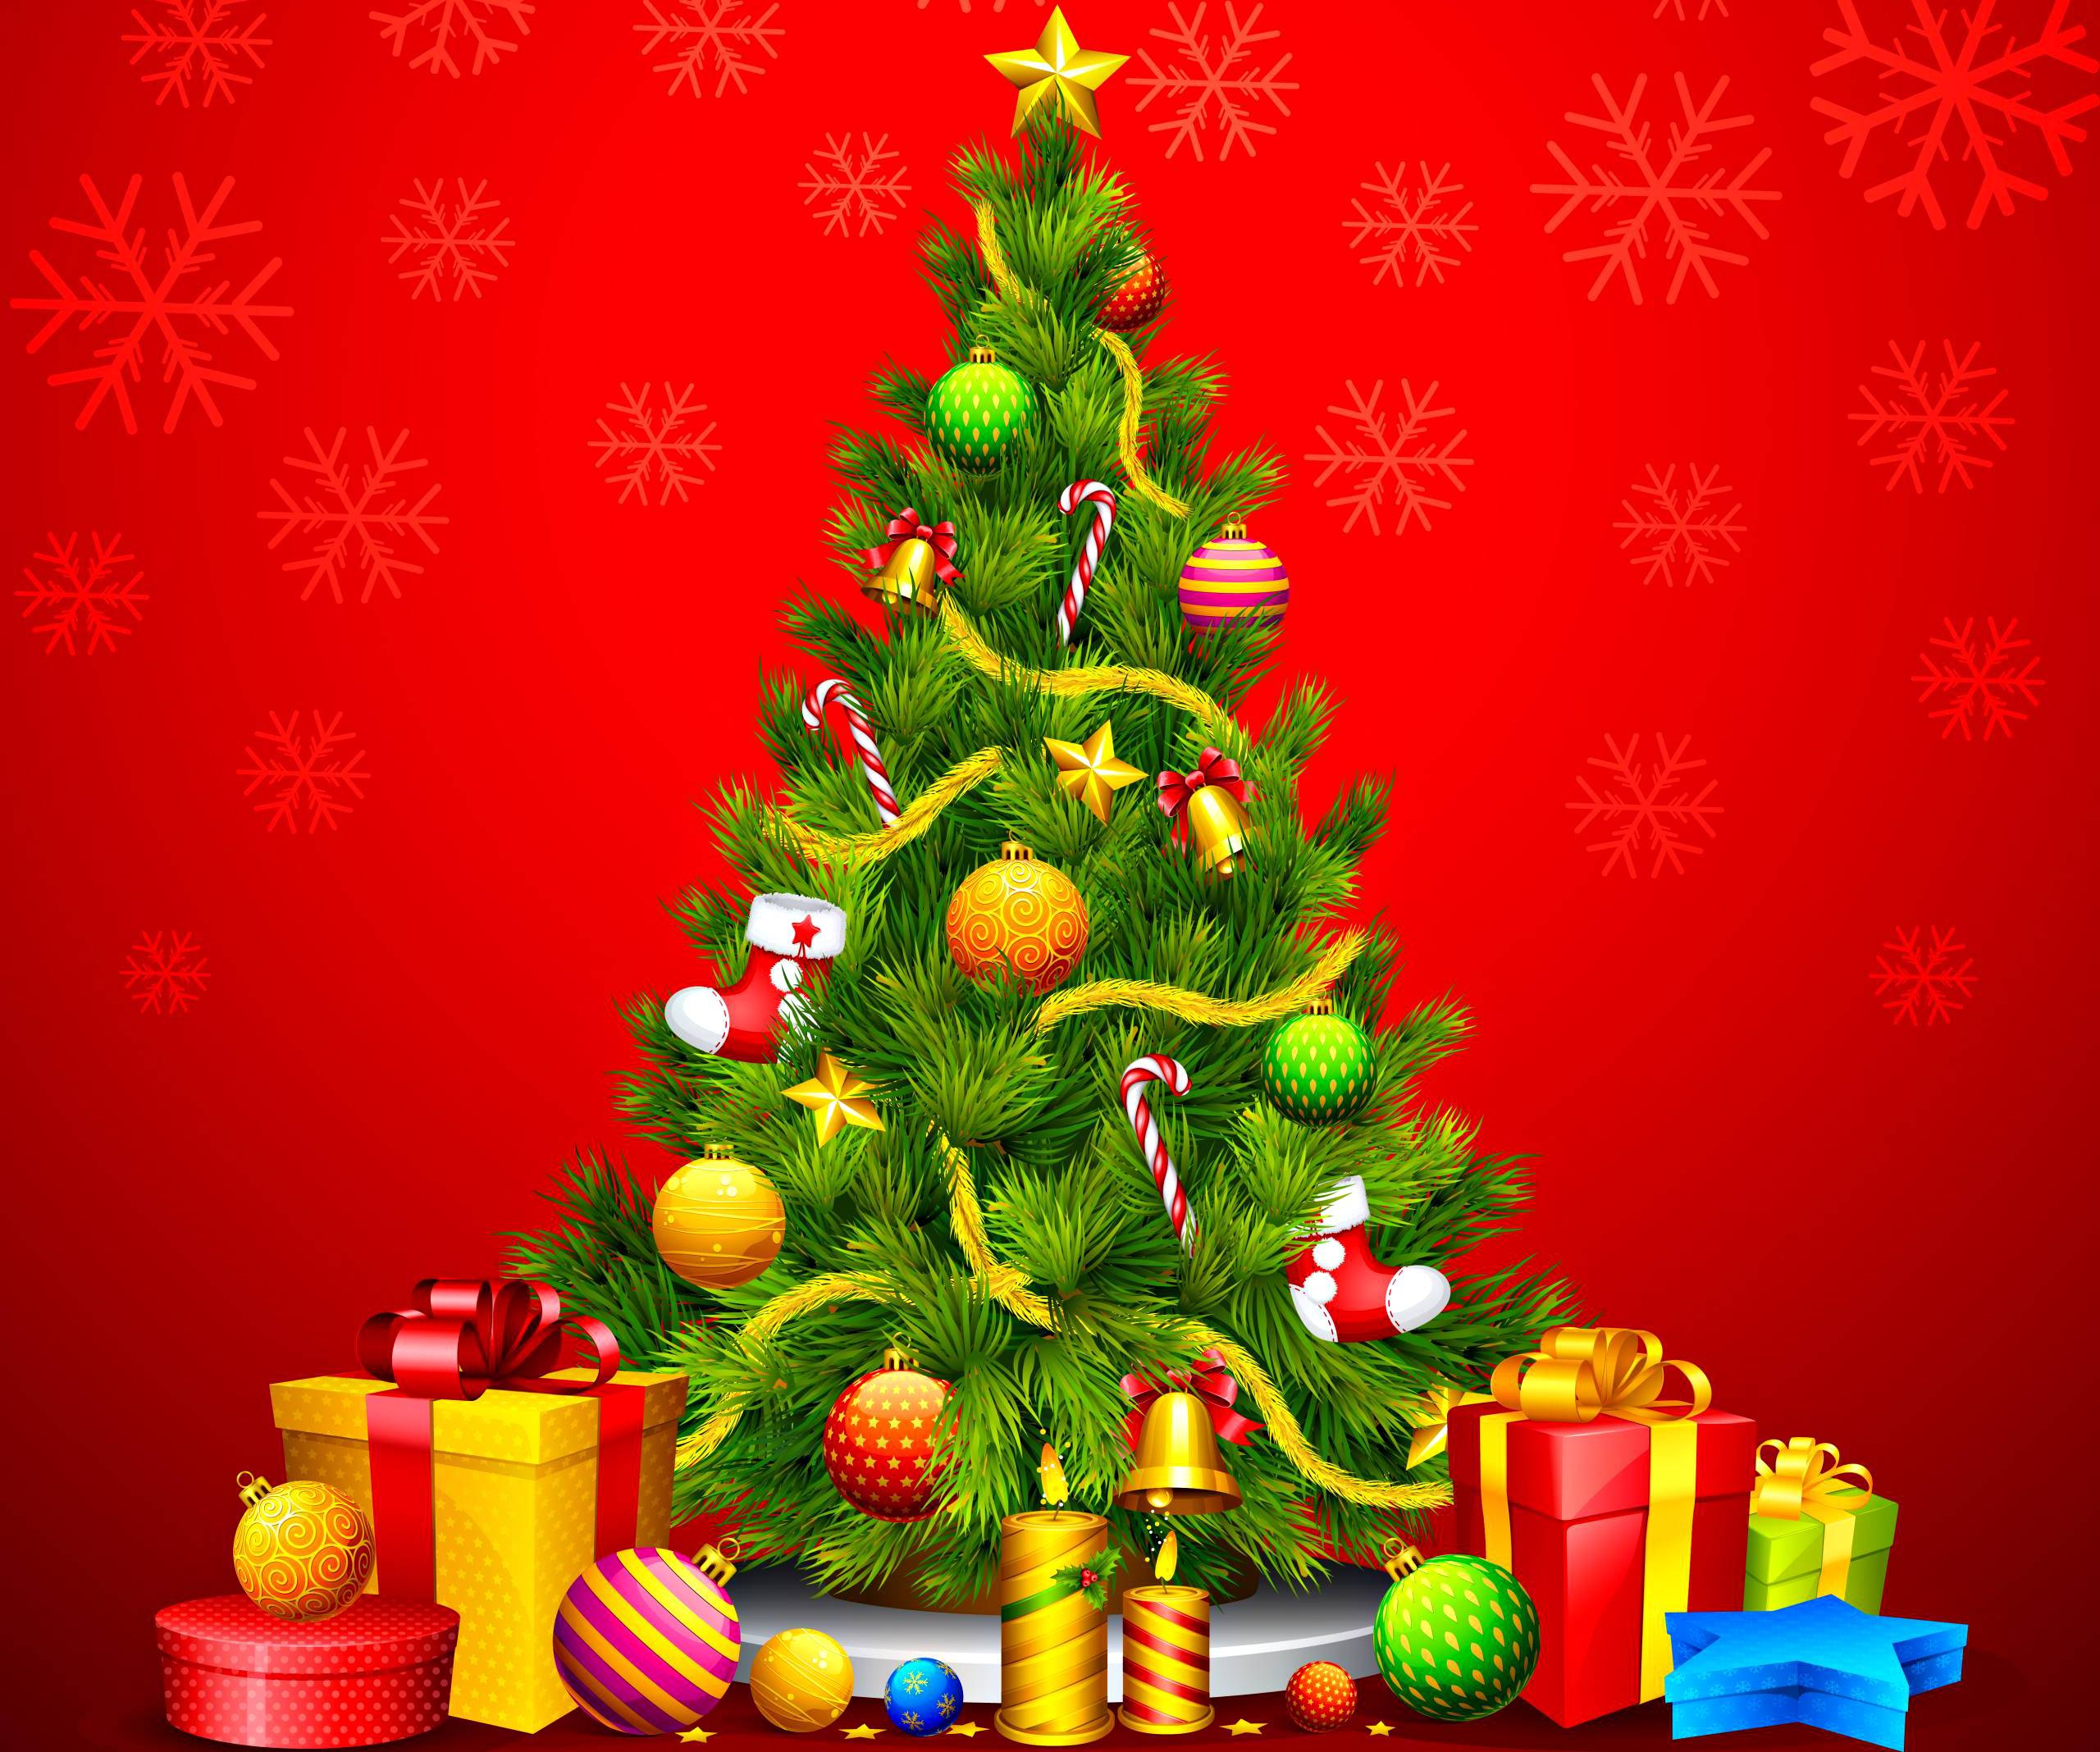 xmas tree wallpapers - wallpaper cave